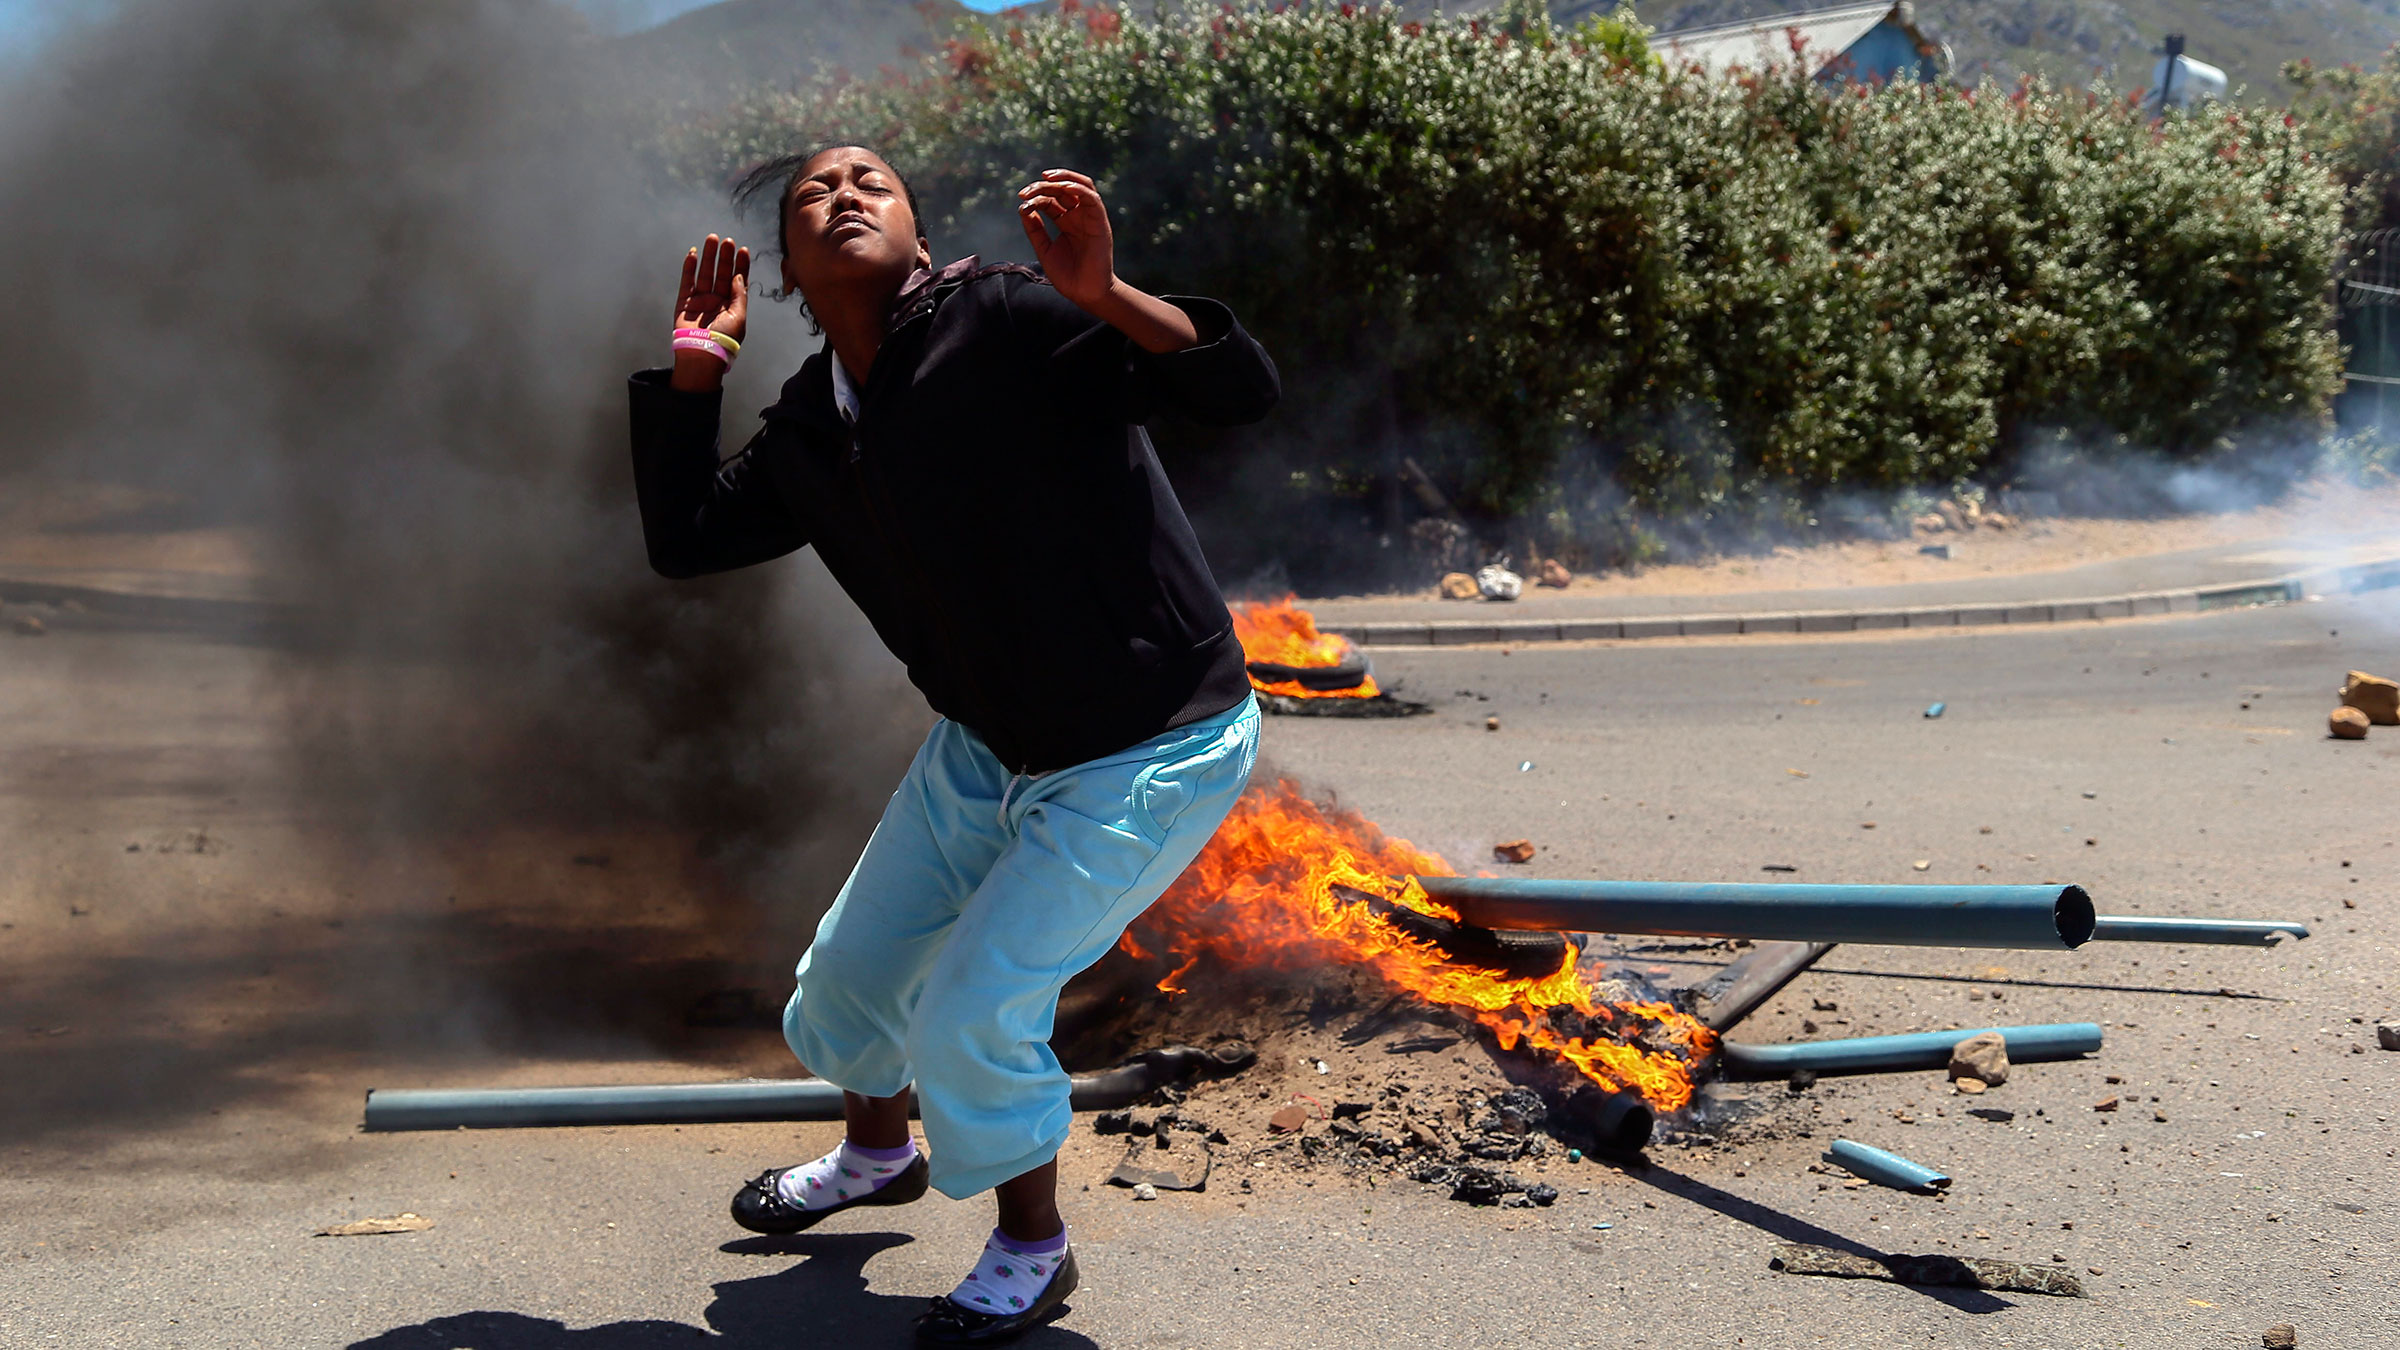 Dec. 4, 2012. A woman runs from a burning barricade during a farm workers strike in the wine producing valley of Franschhoek, outside Cape Town, South Africa.